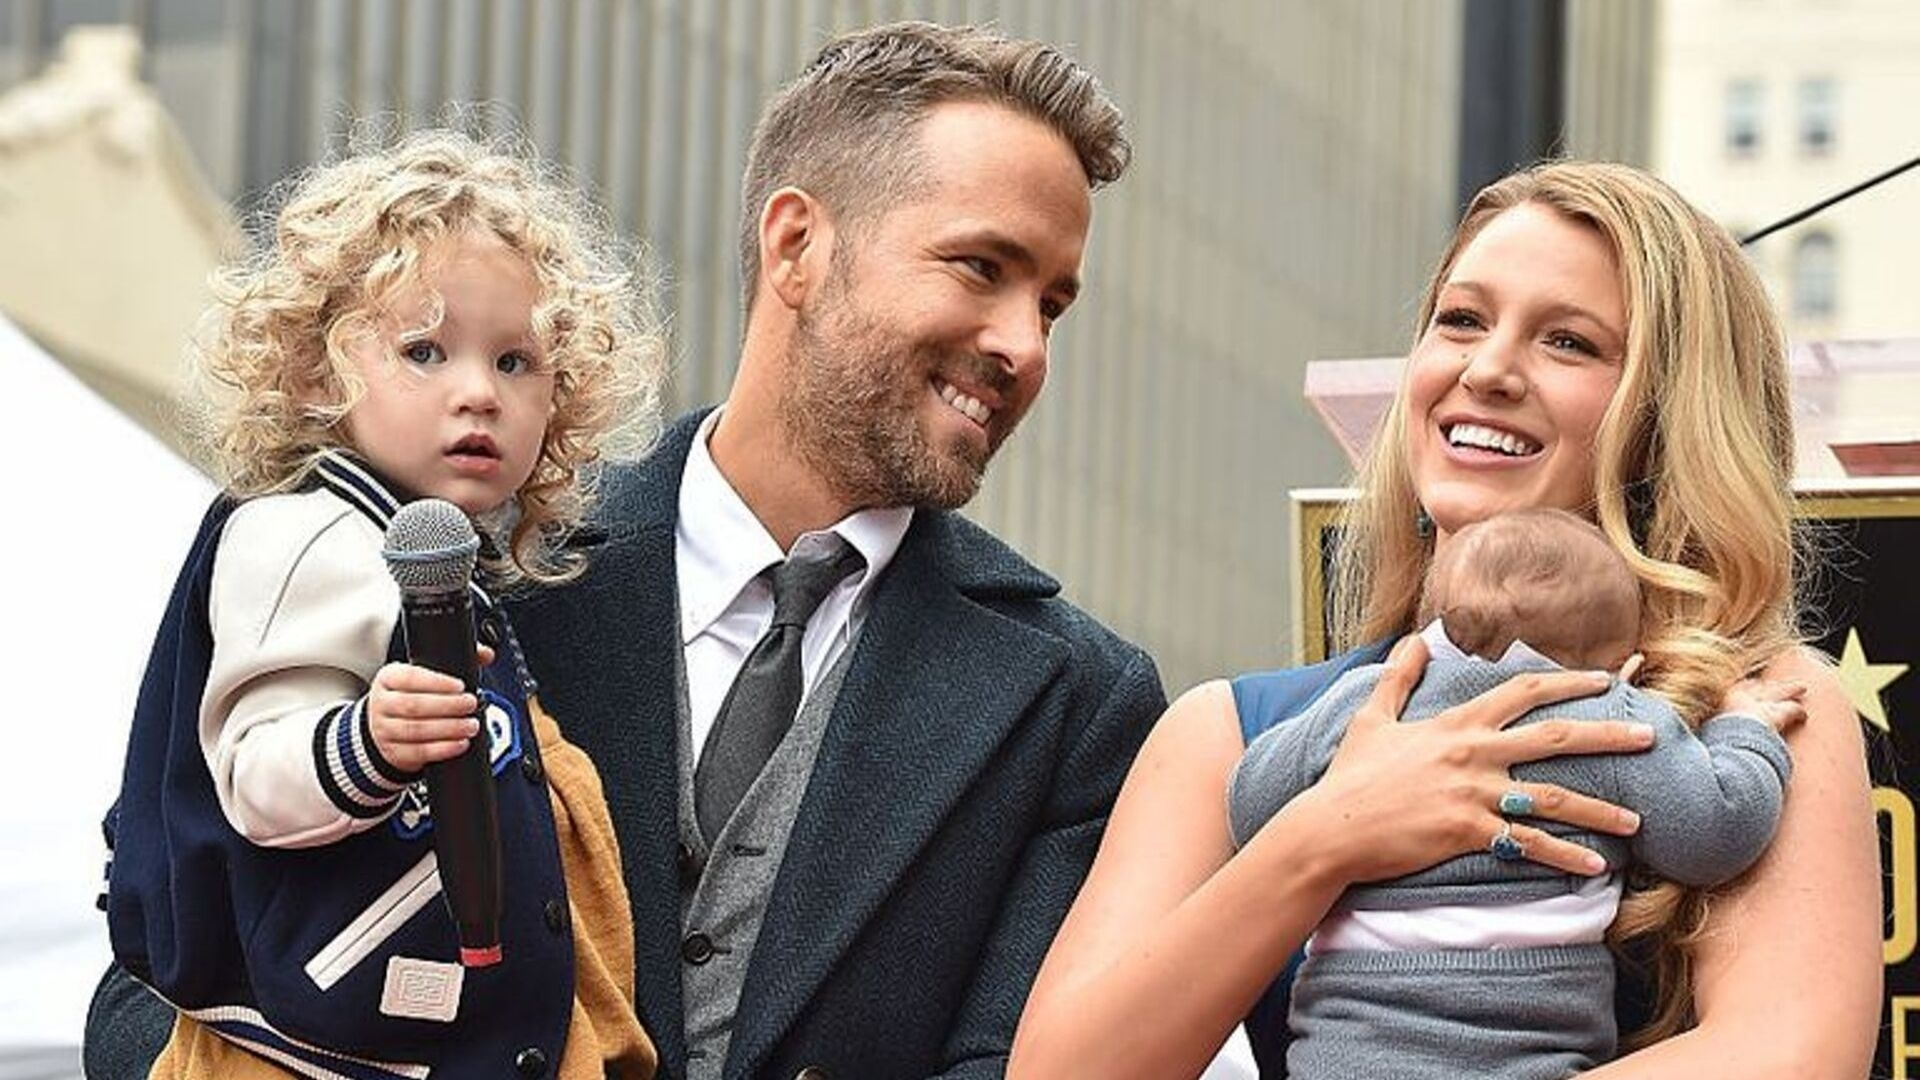 Blake Lively And Ryan Reynolds Share The First Photo Of Their Third Child